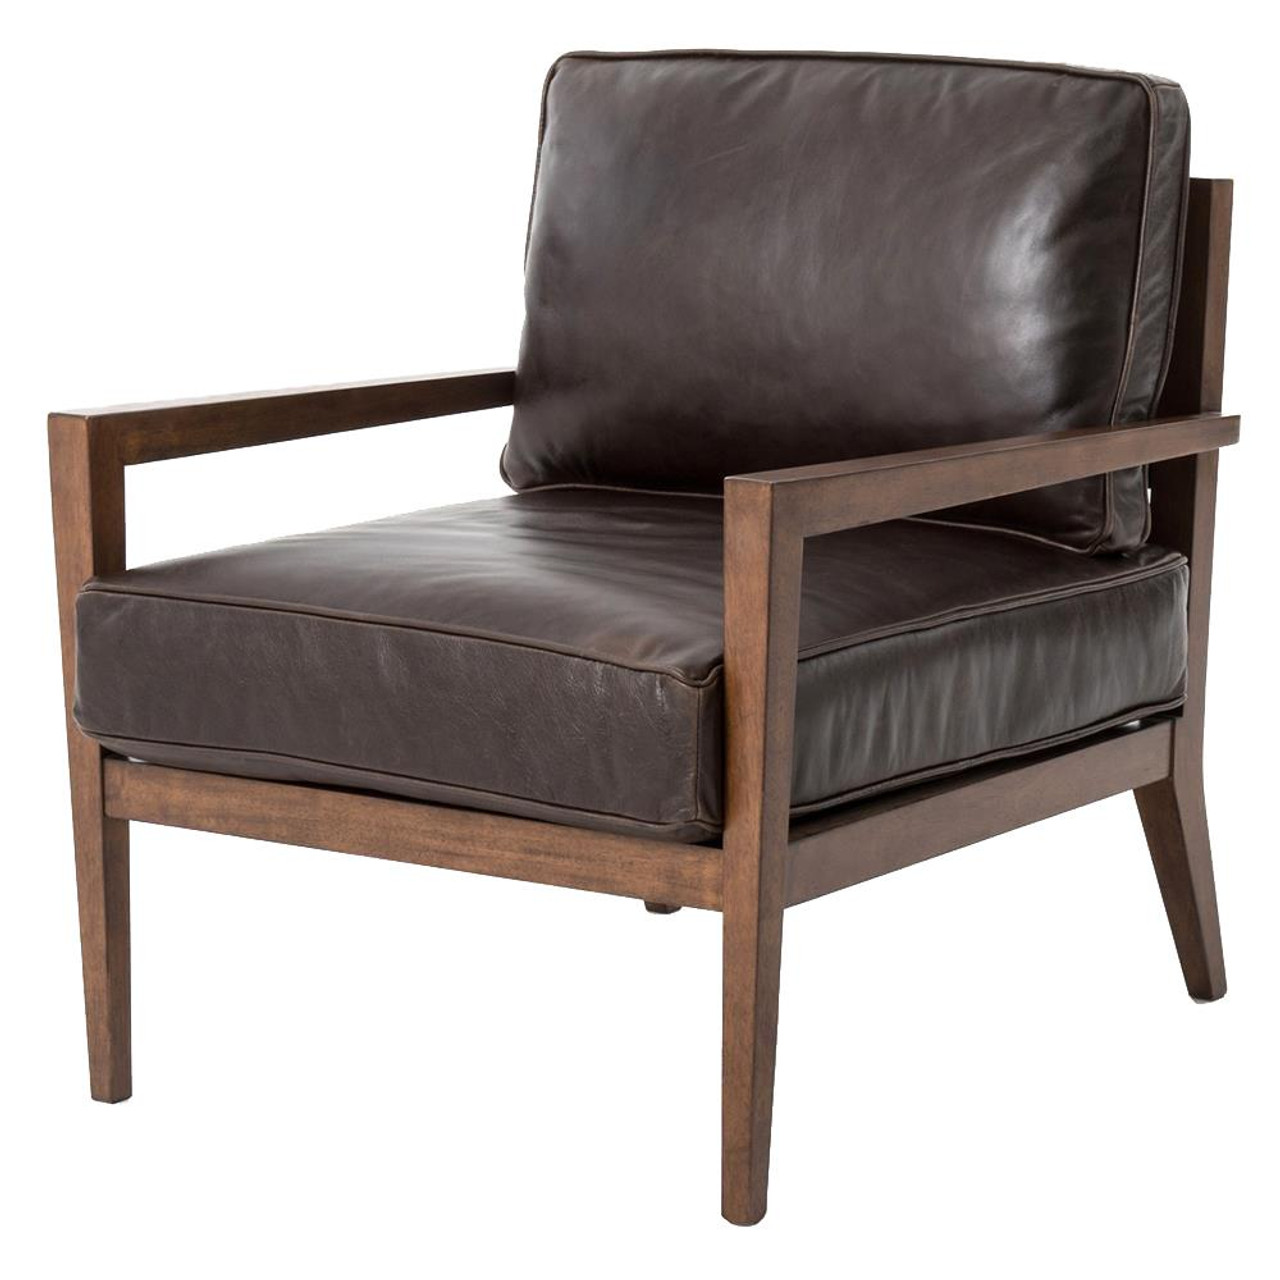 wood frame accent chairs. Laurent Wood Frame Brown Leather Accent Chair Chairs E